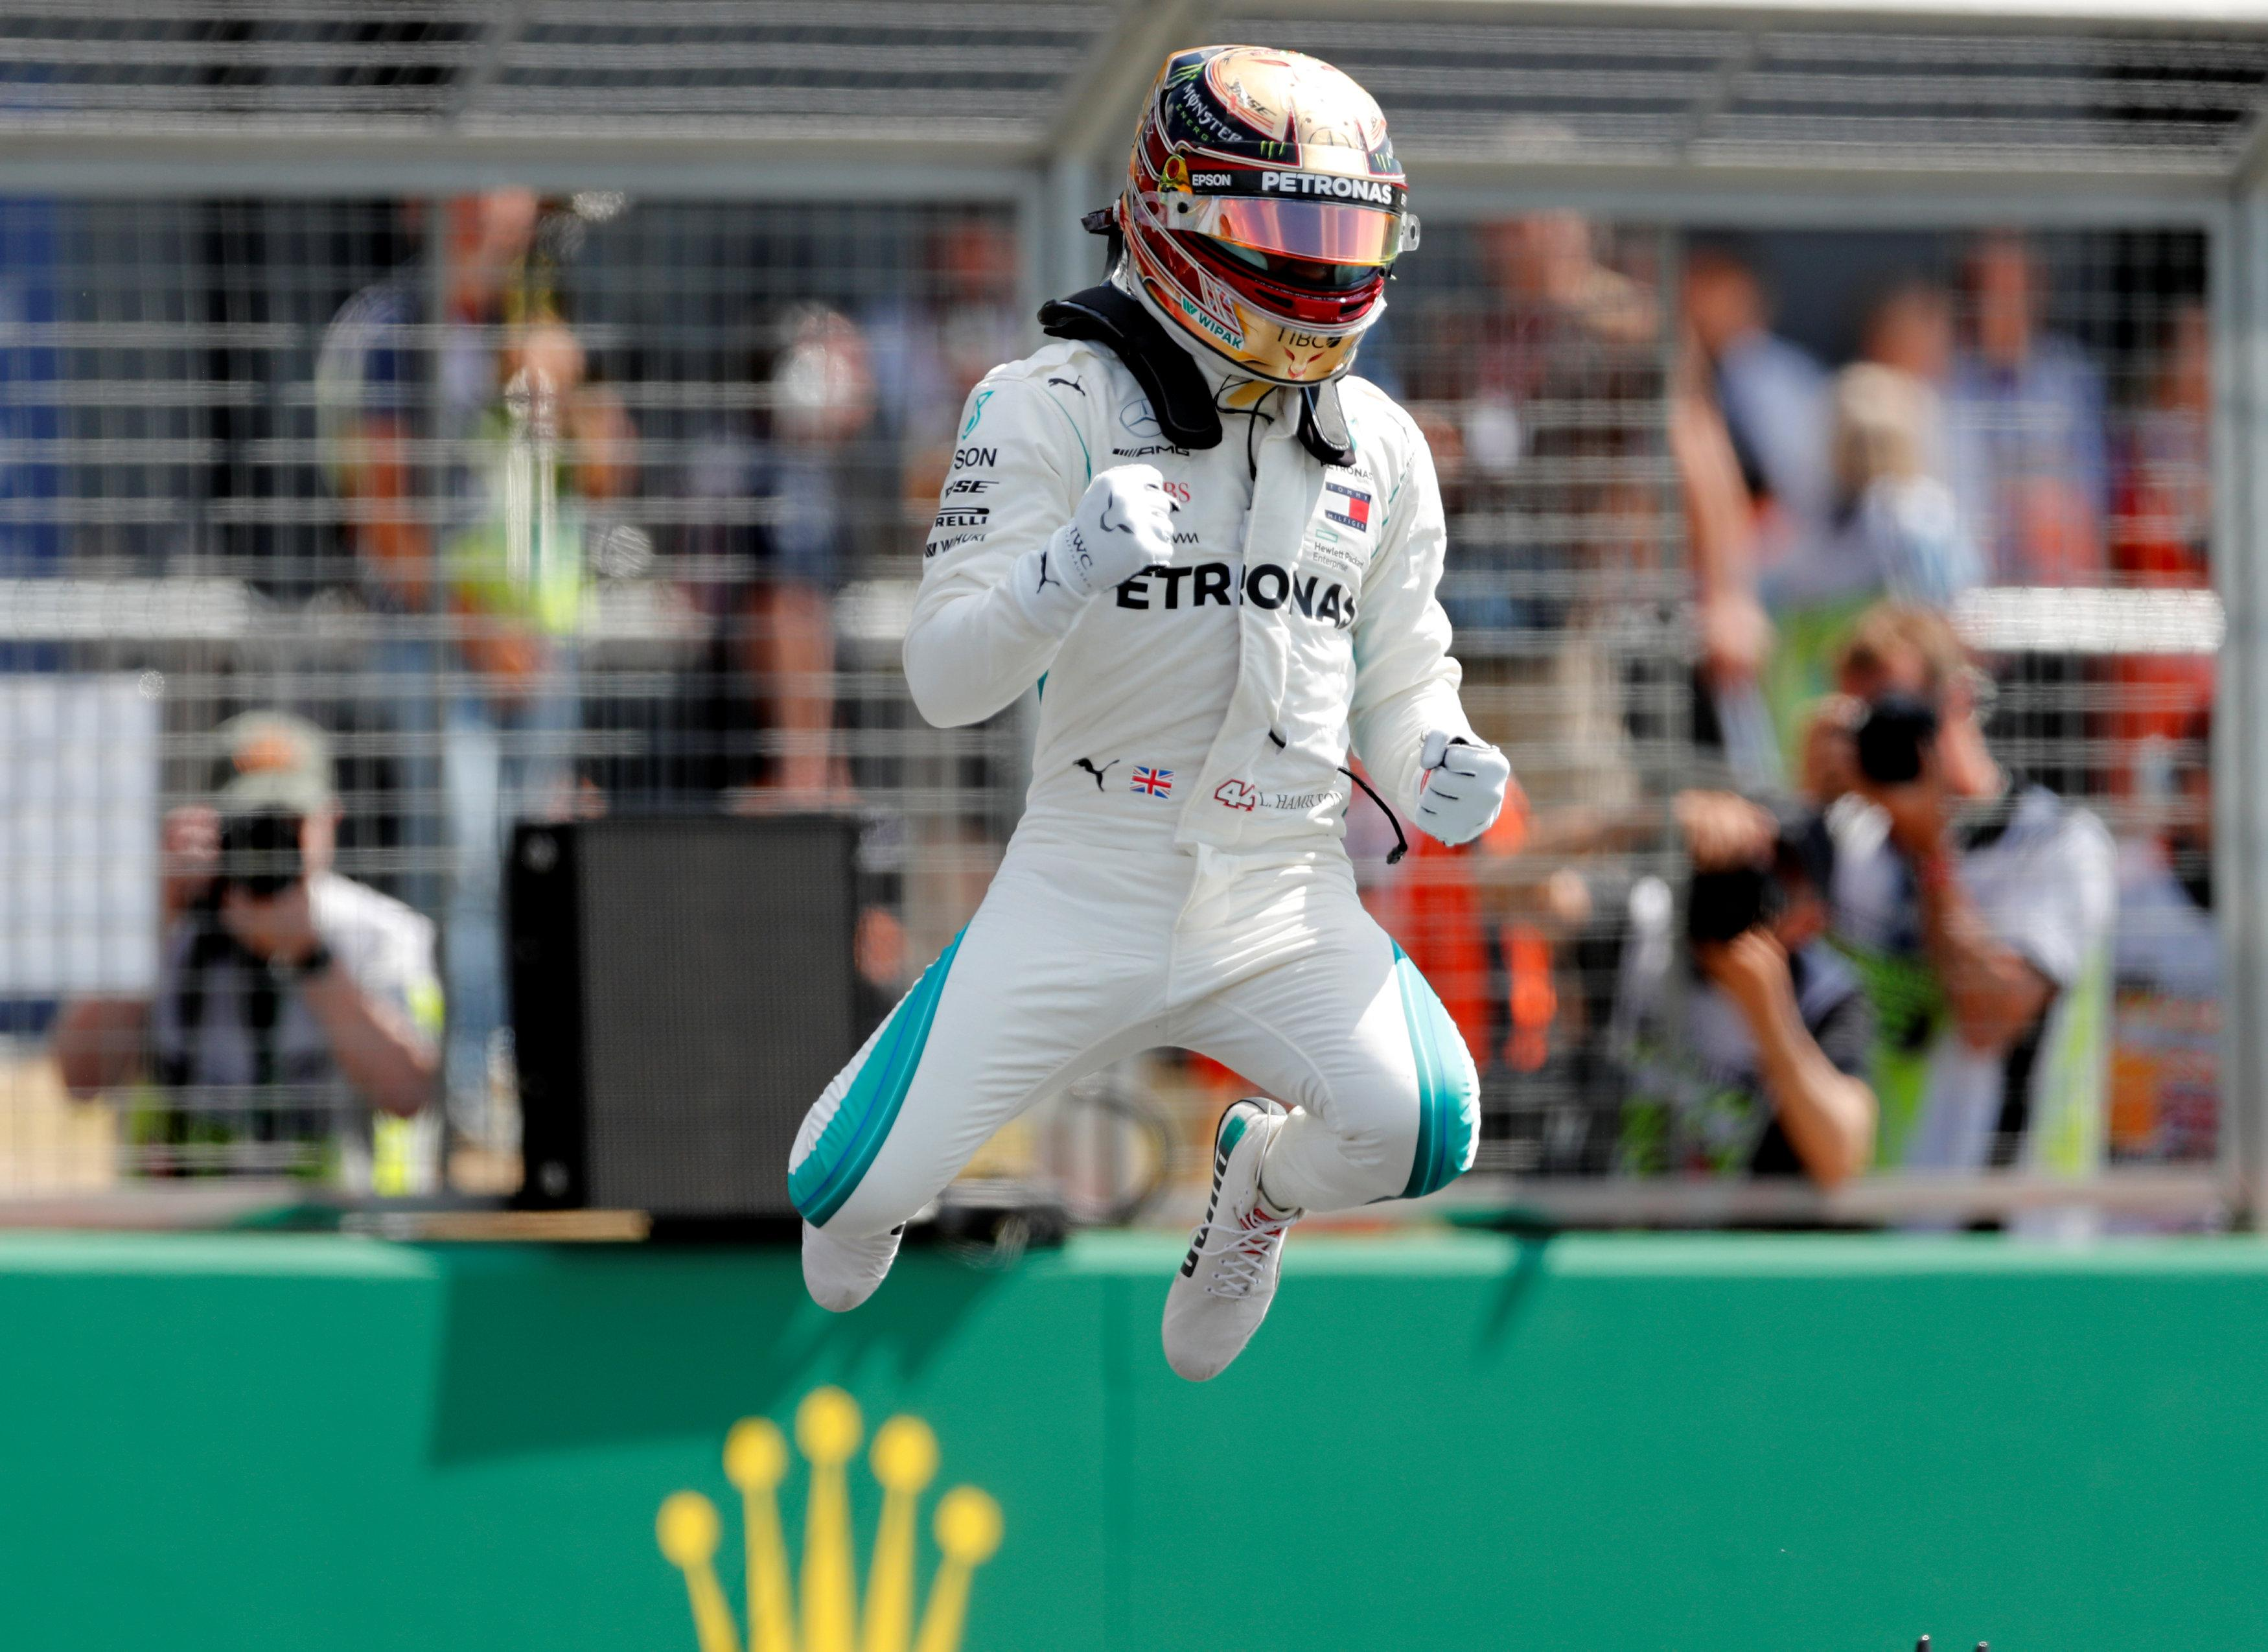 Lewis Hamilton shows his delight at taking pole at Silverstone